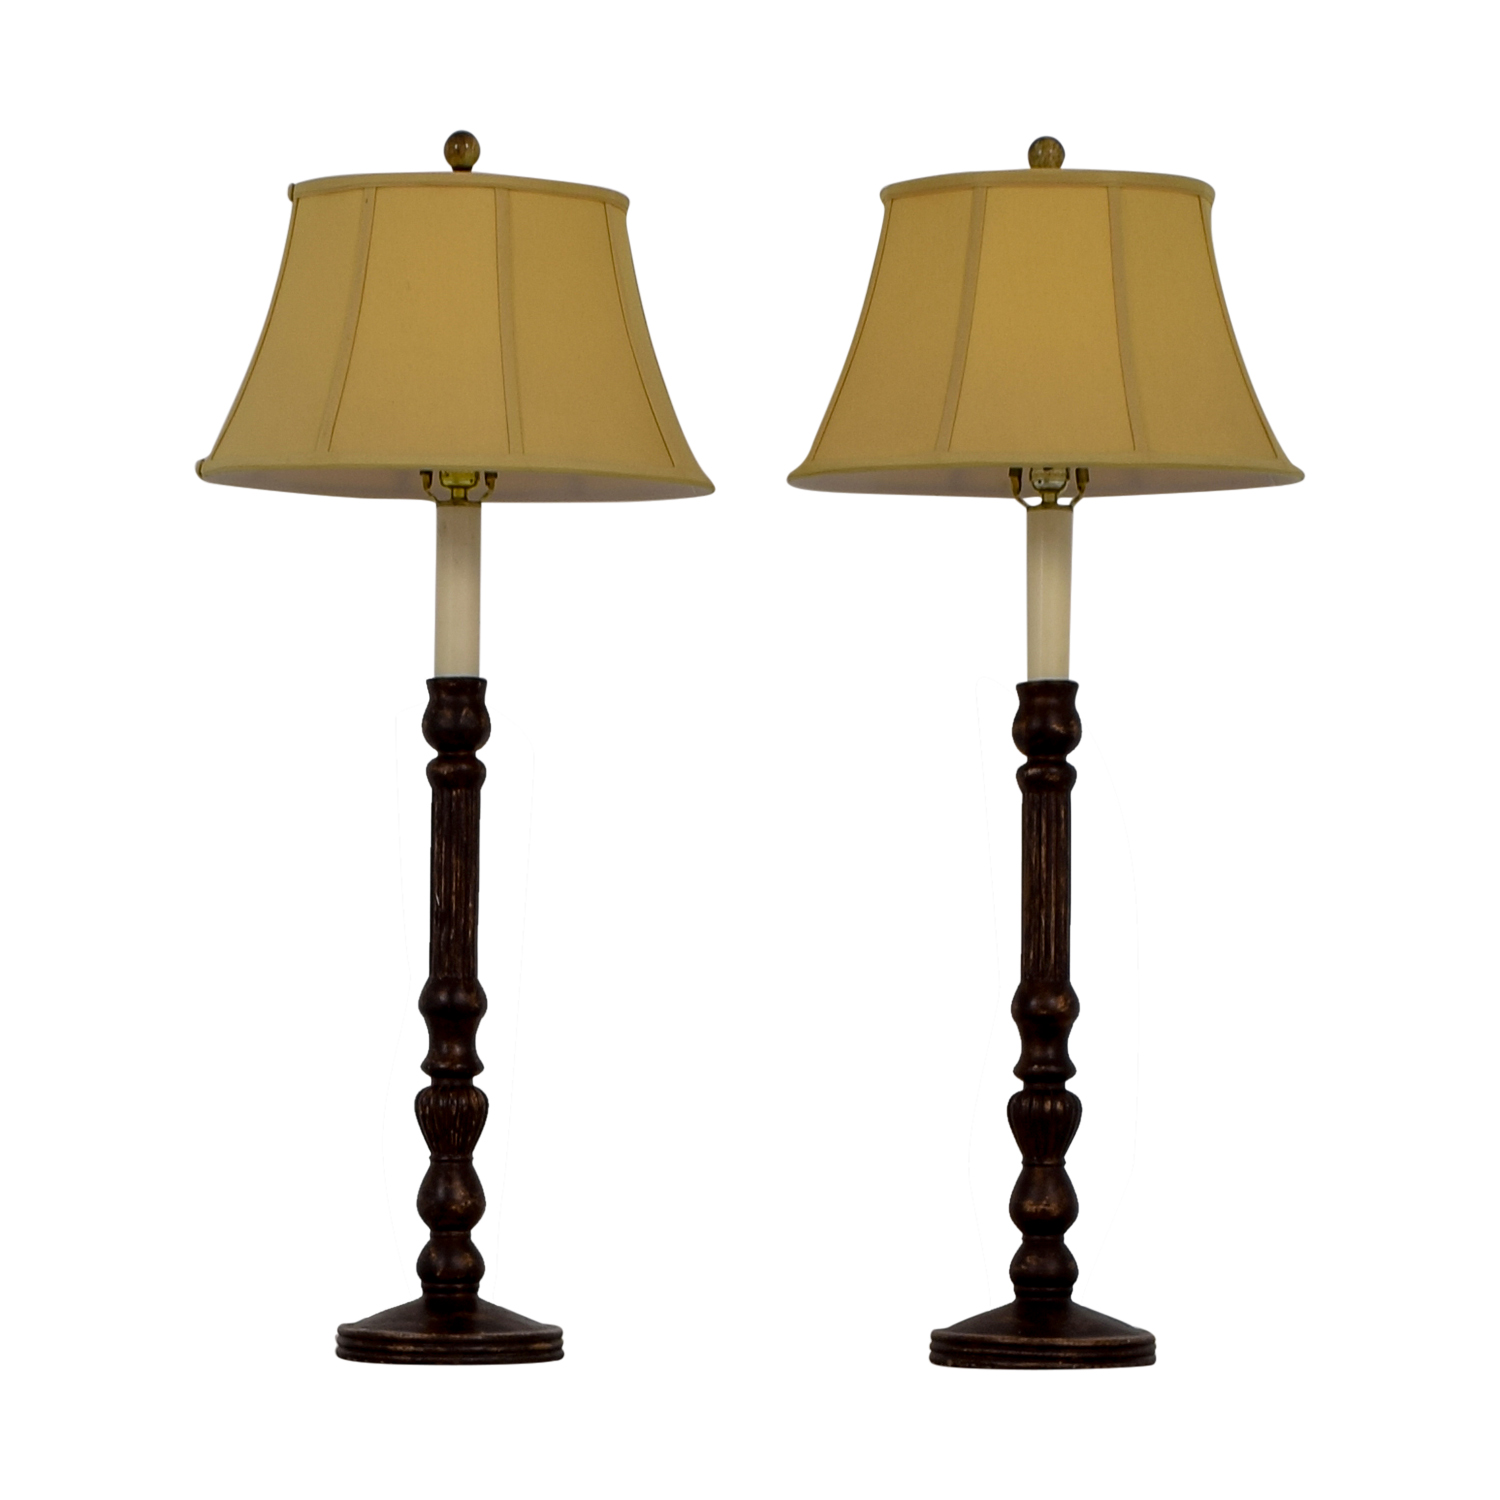 Barbara Cosgrove Barbara Cosgrove Distressed Tall Table Lamps with Silk Shades nyc